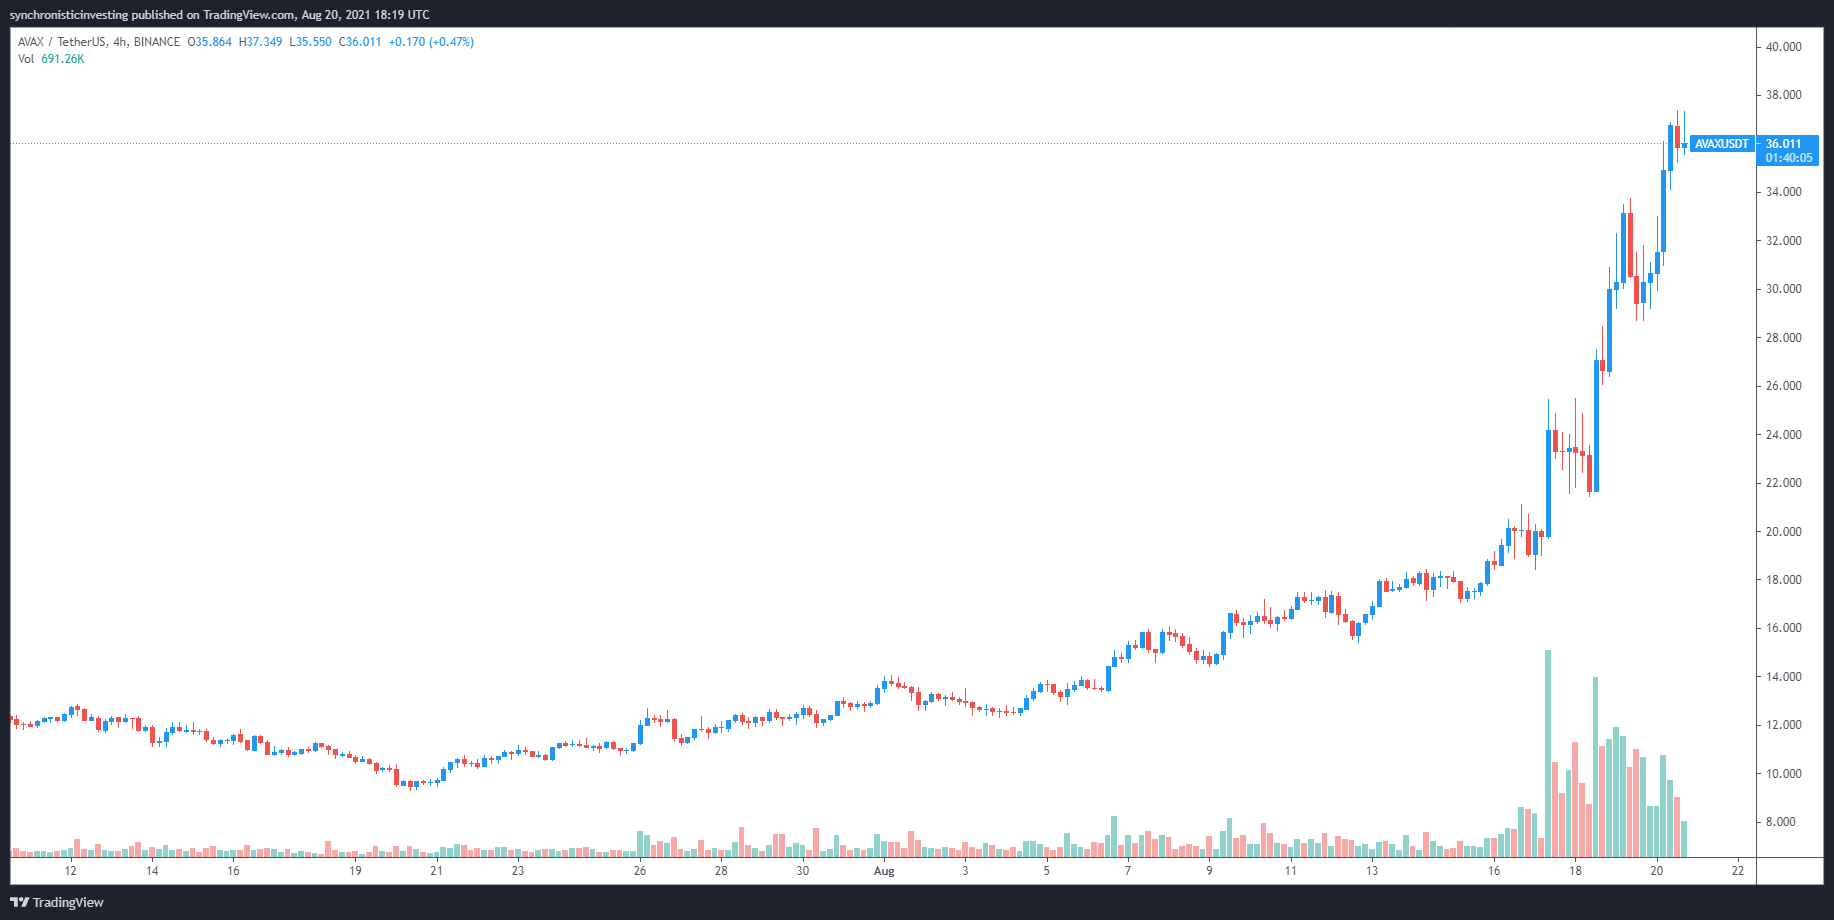 3 reasons why Avalanche (AVAX) price is up 200% this month